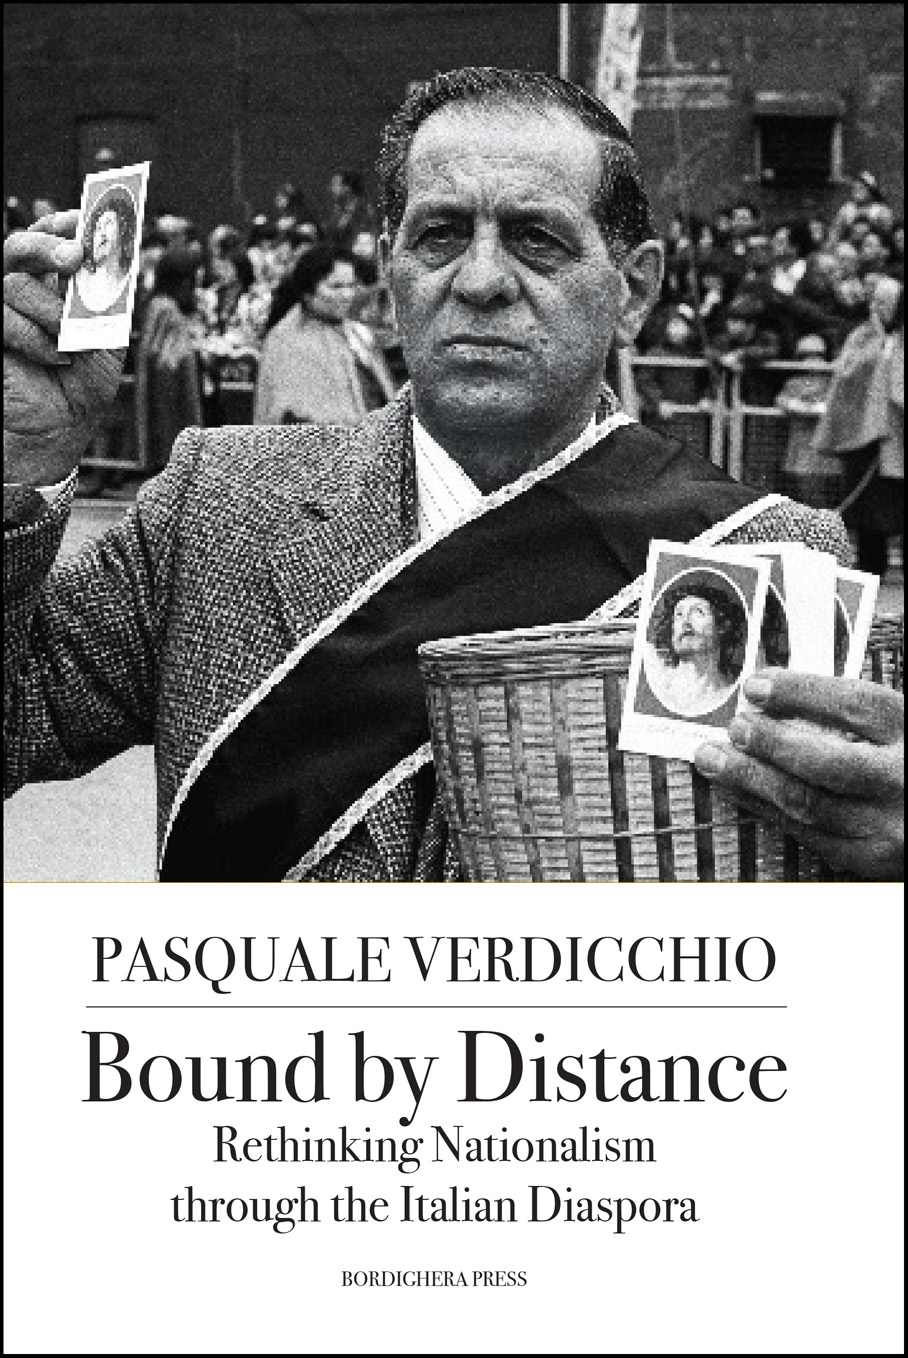 Bound by Distance: Rethinking Nationalism through the Italian Diaspora